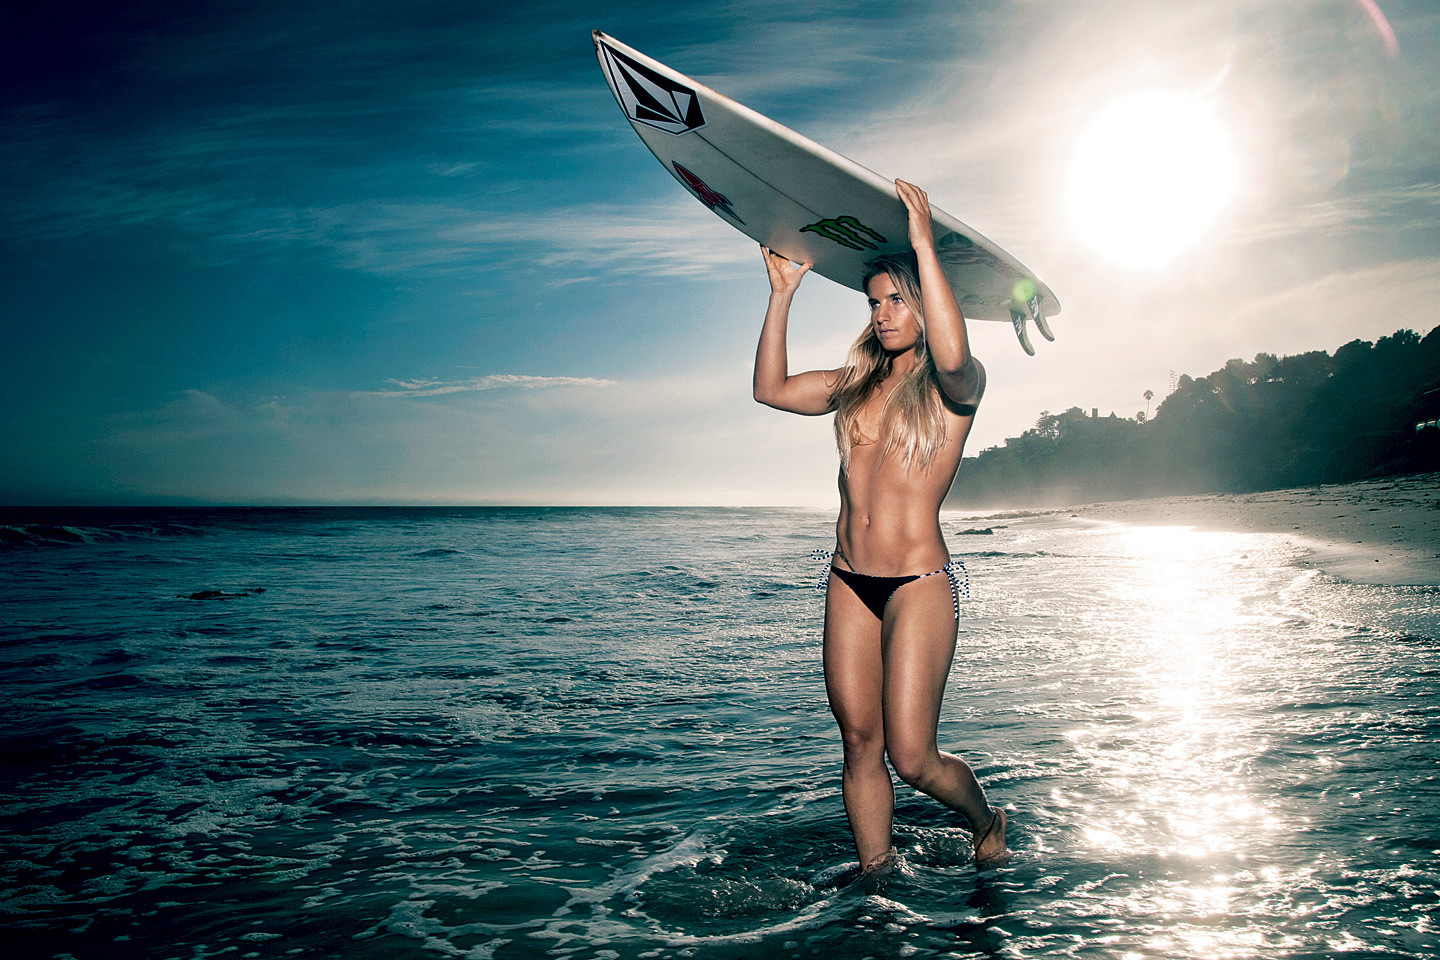 beautiful surfer girls 1